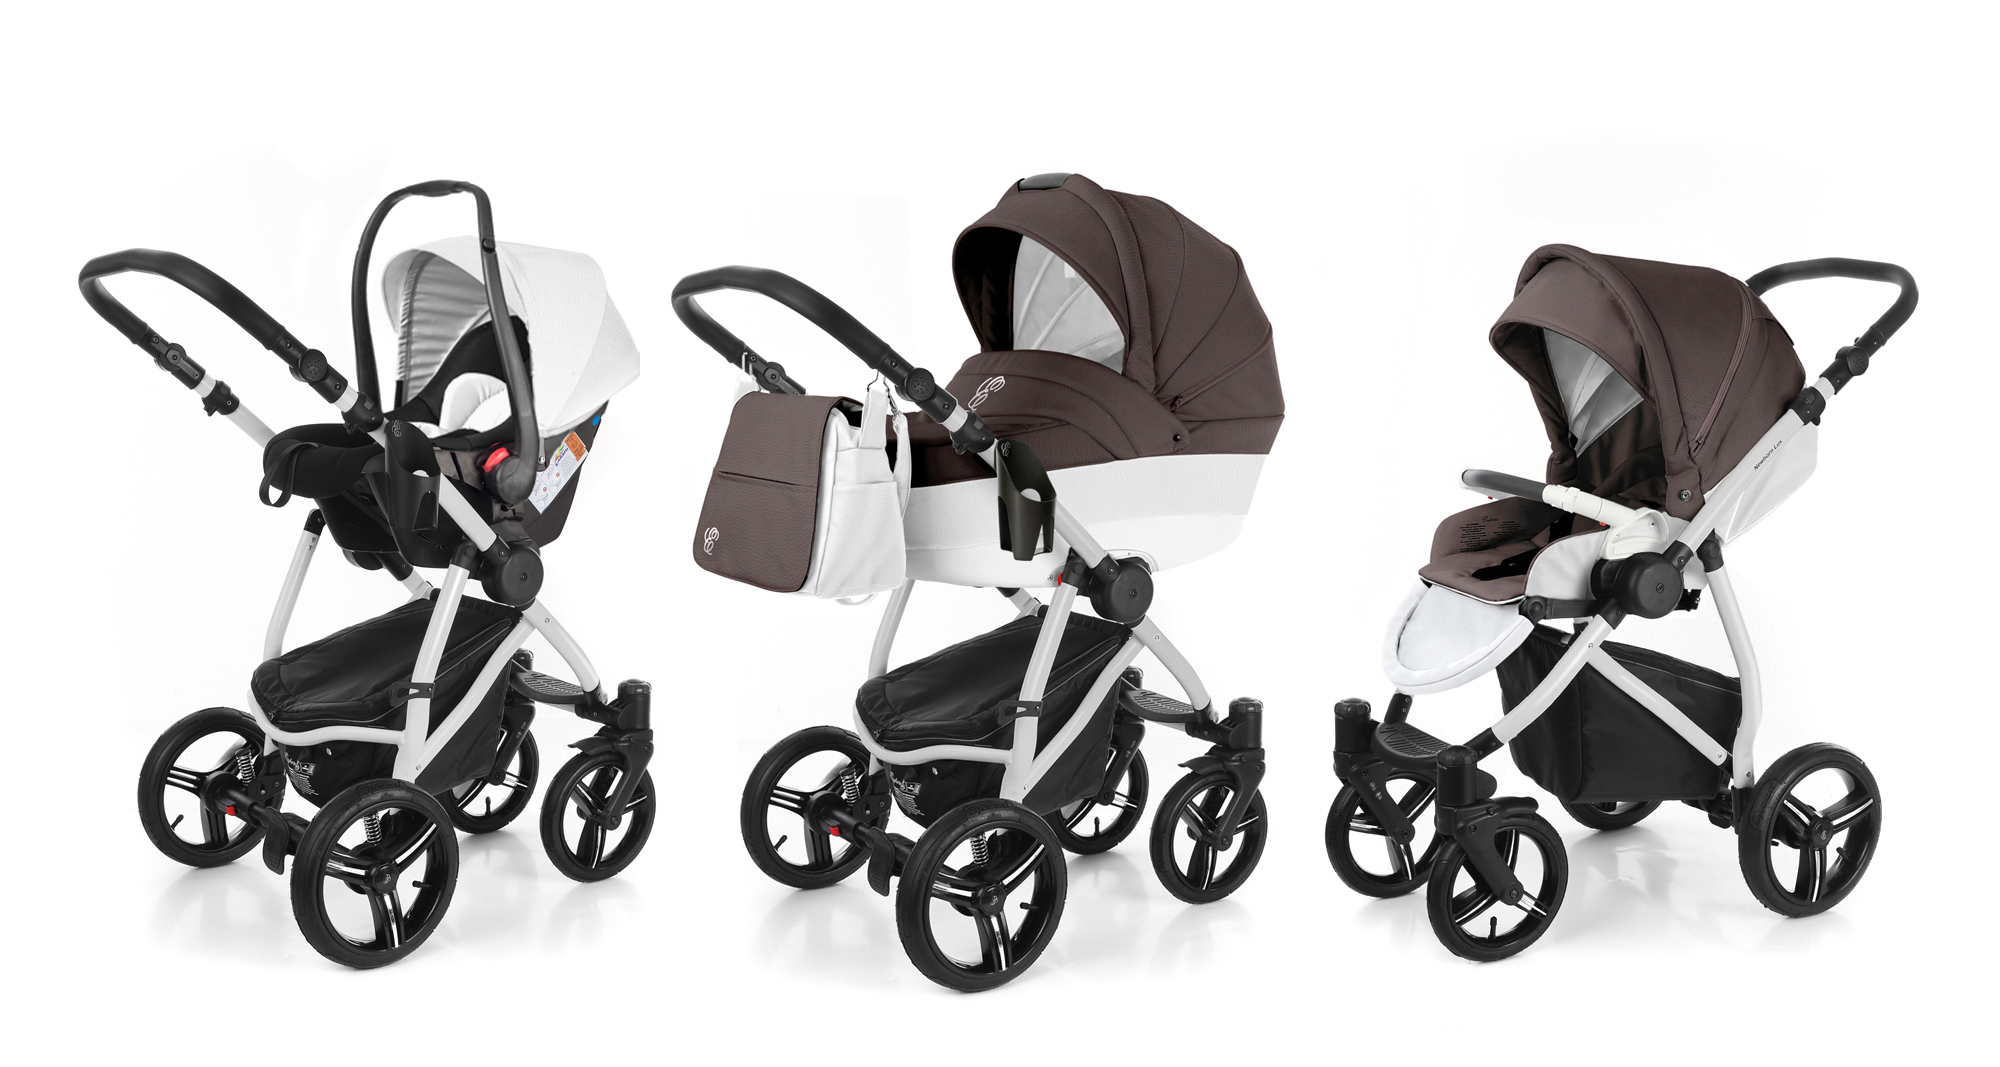 Коляска 3 в 1 Esspero Grand Newborn Lux (шасси Grey). Фото N12